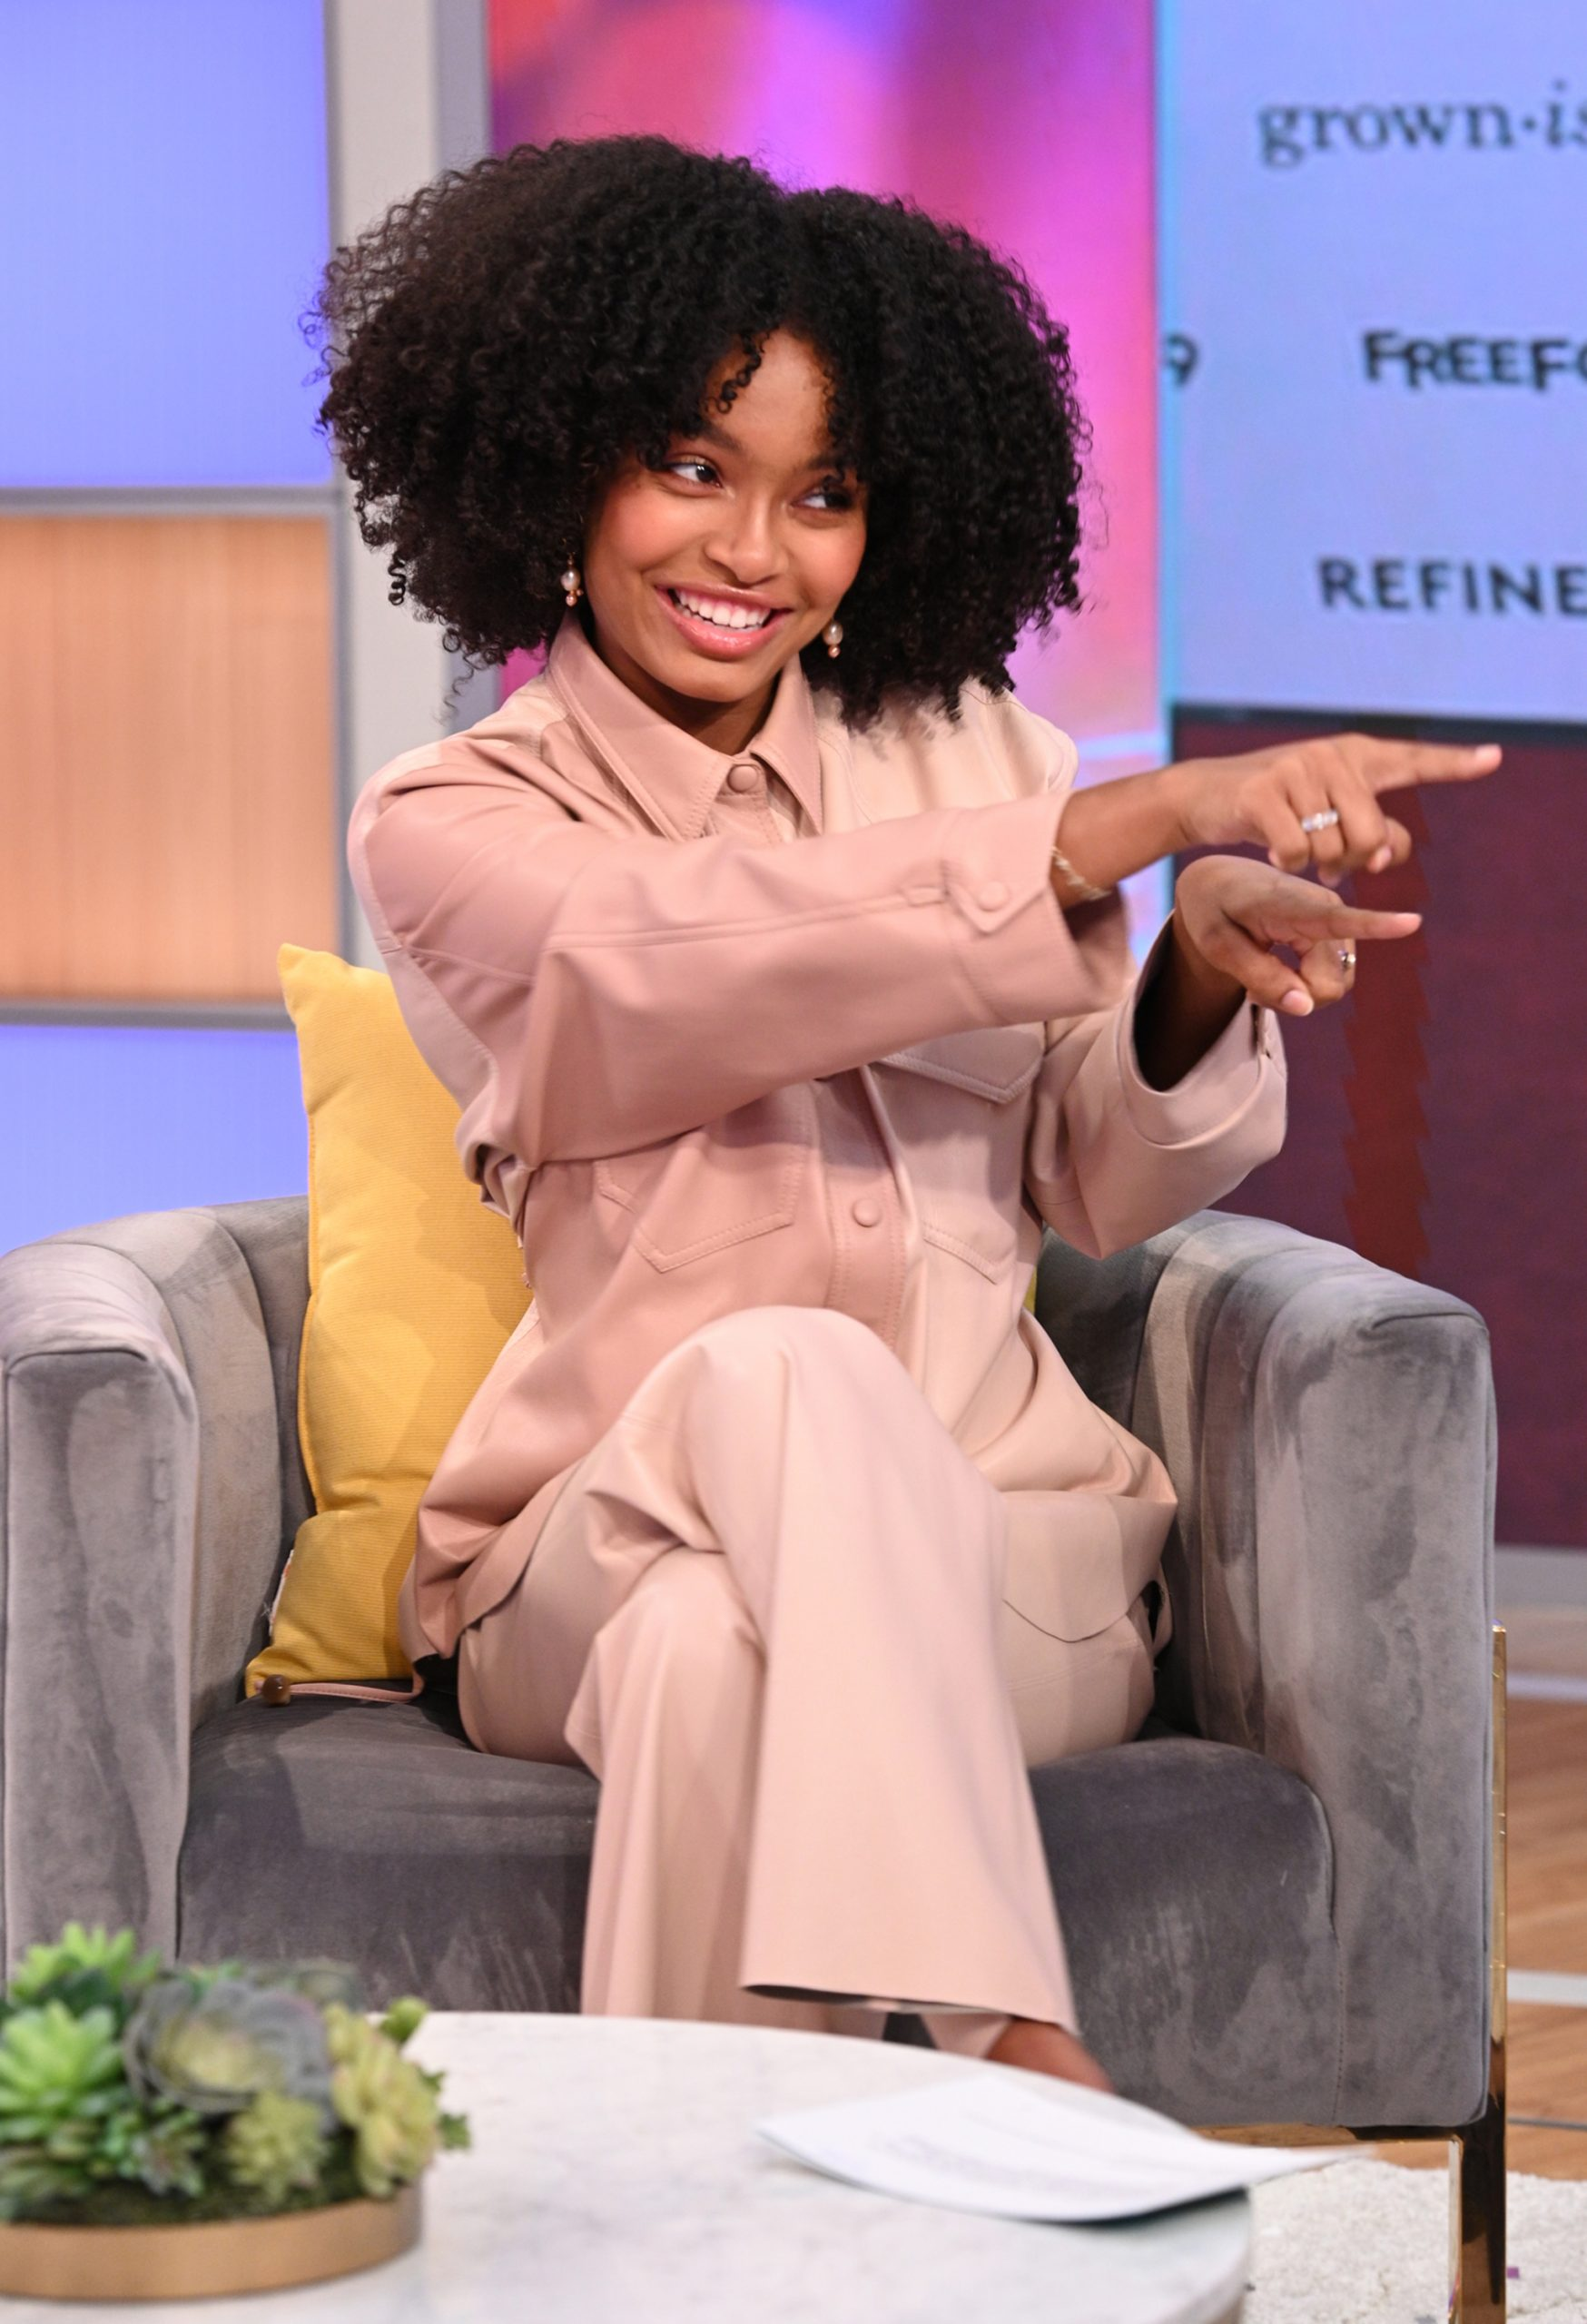 In Case You Missed It: Oprah Winfrey And Yara Shahidi On Tamron Hall Show